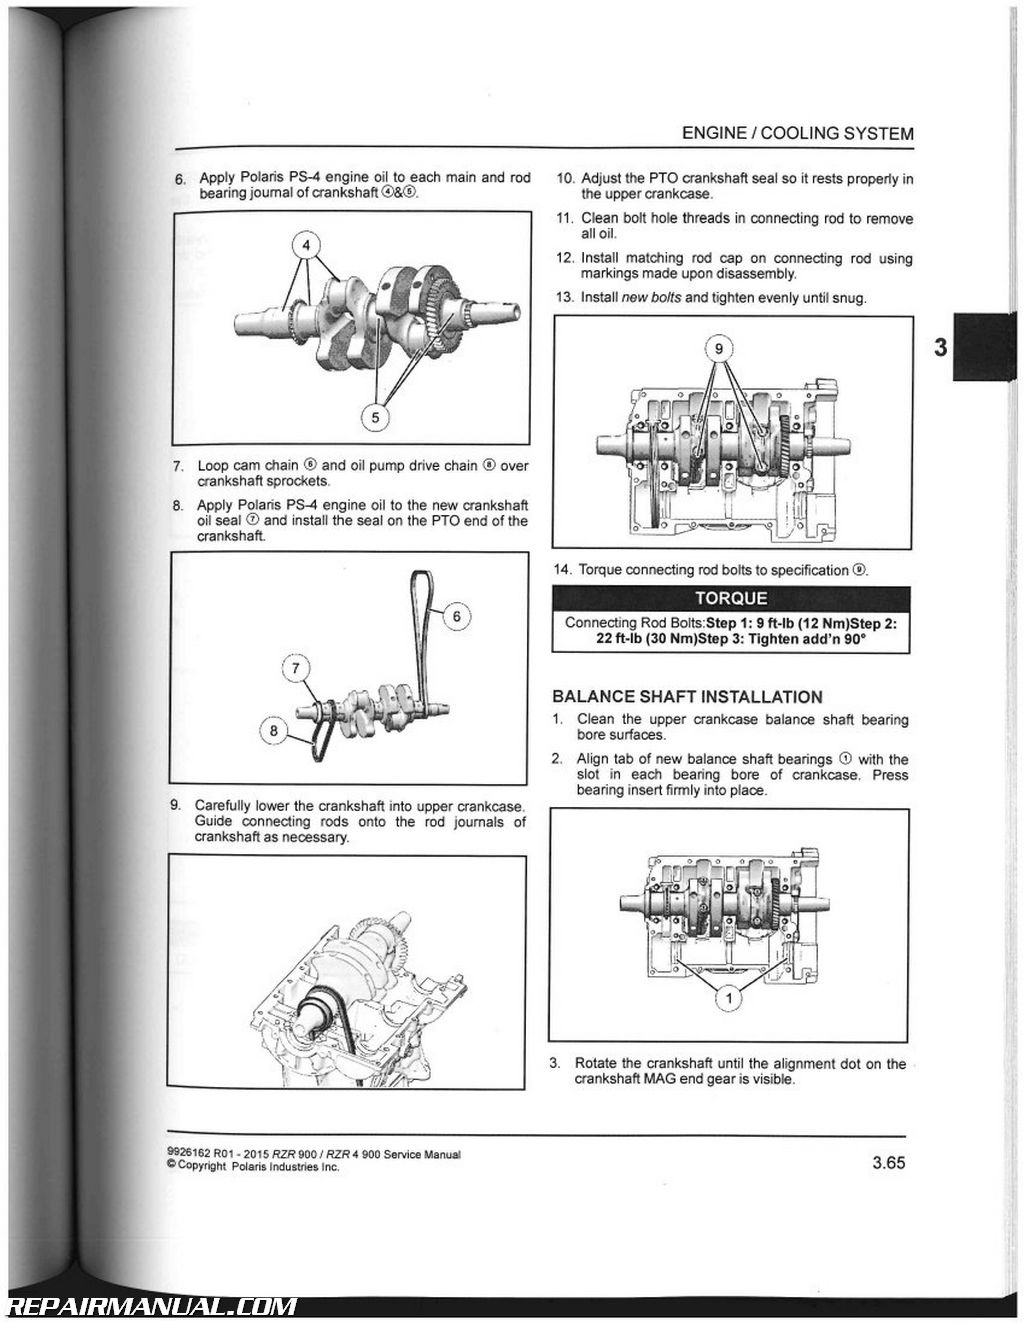 Rzr 4 Wiring Diagram Guide And Troubleshooting Of Schematic 2015 Polaris Ranger 900 Side By Service Manual Rh Repairmanual Com 800 Lights